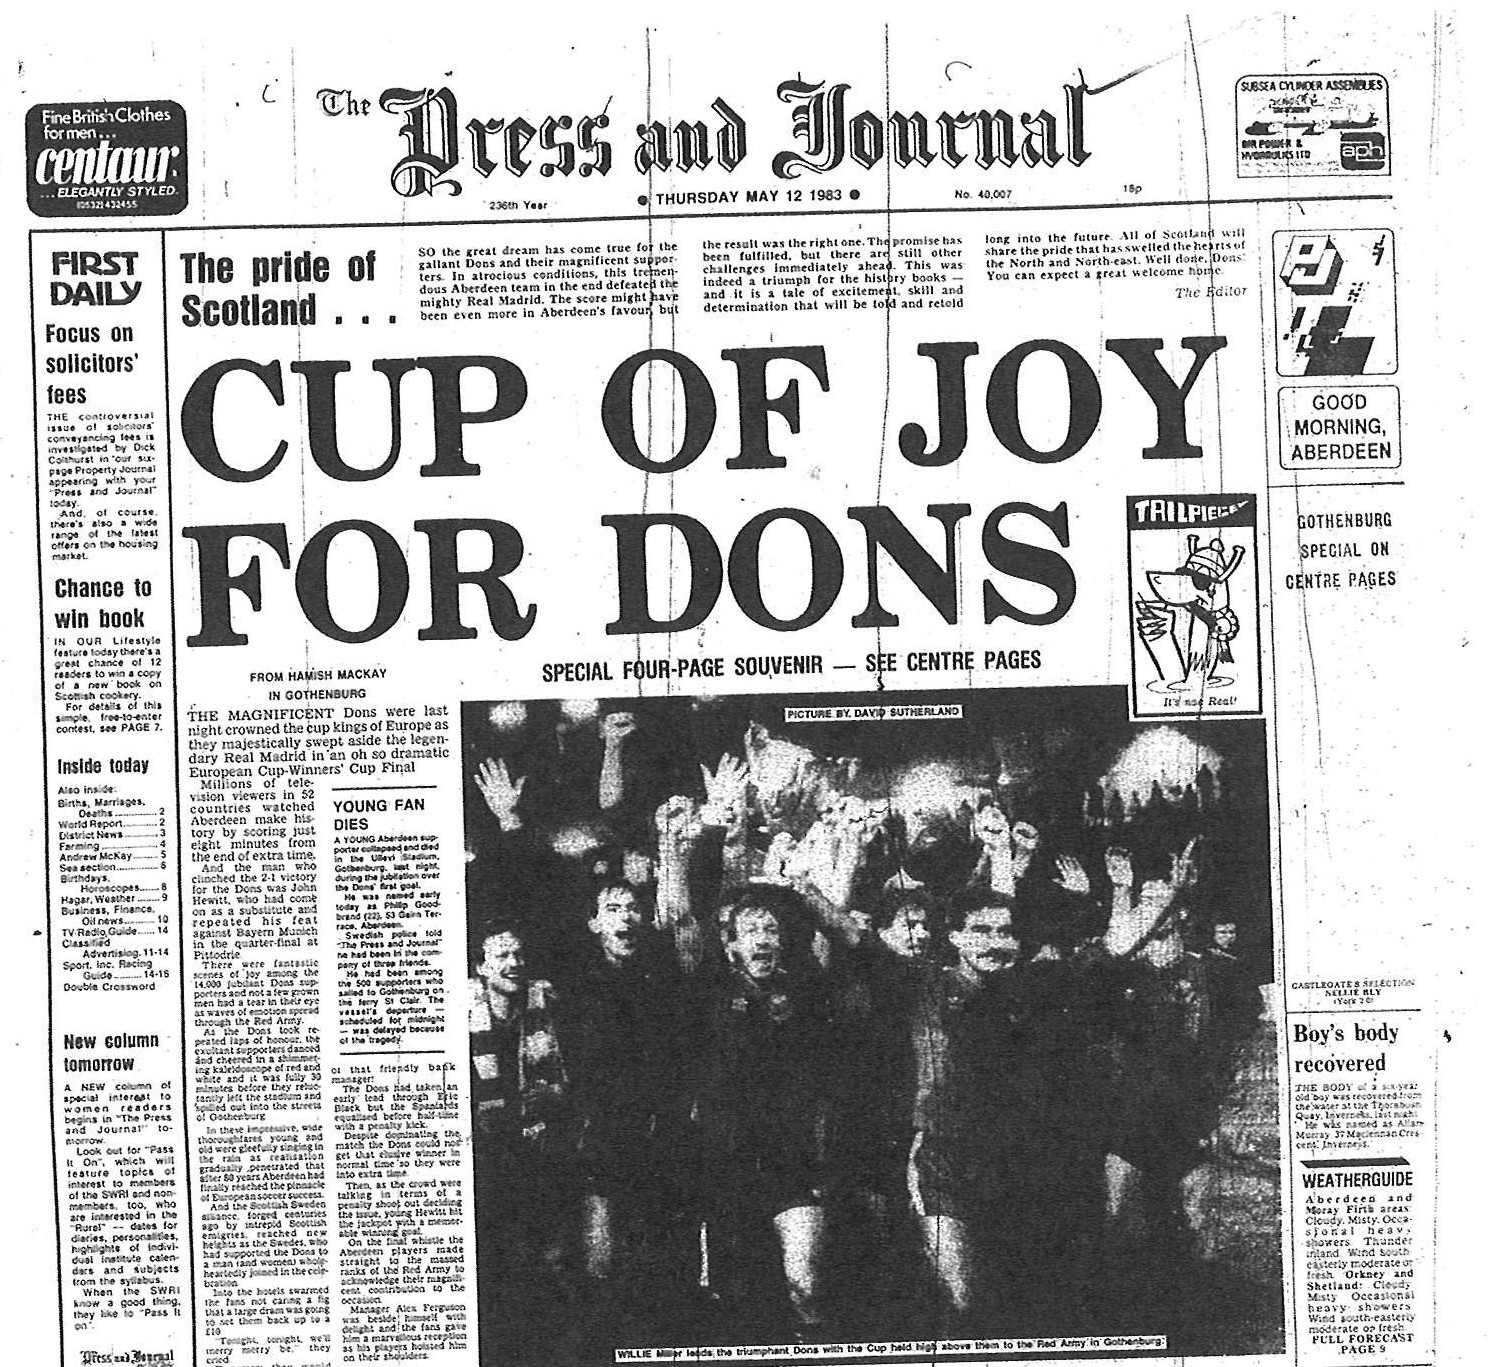 The front page on 12 May 1983 was dedicated to the Dons hour of glory